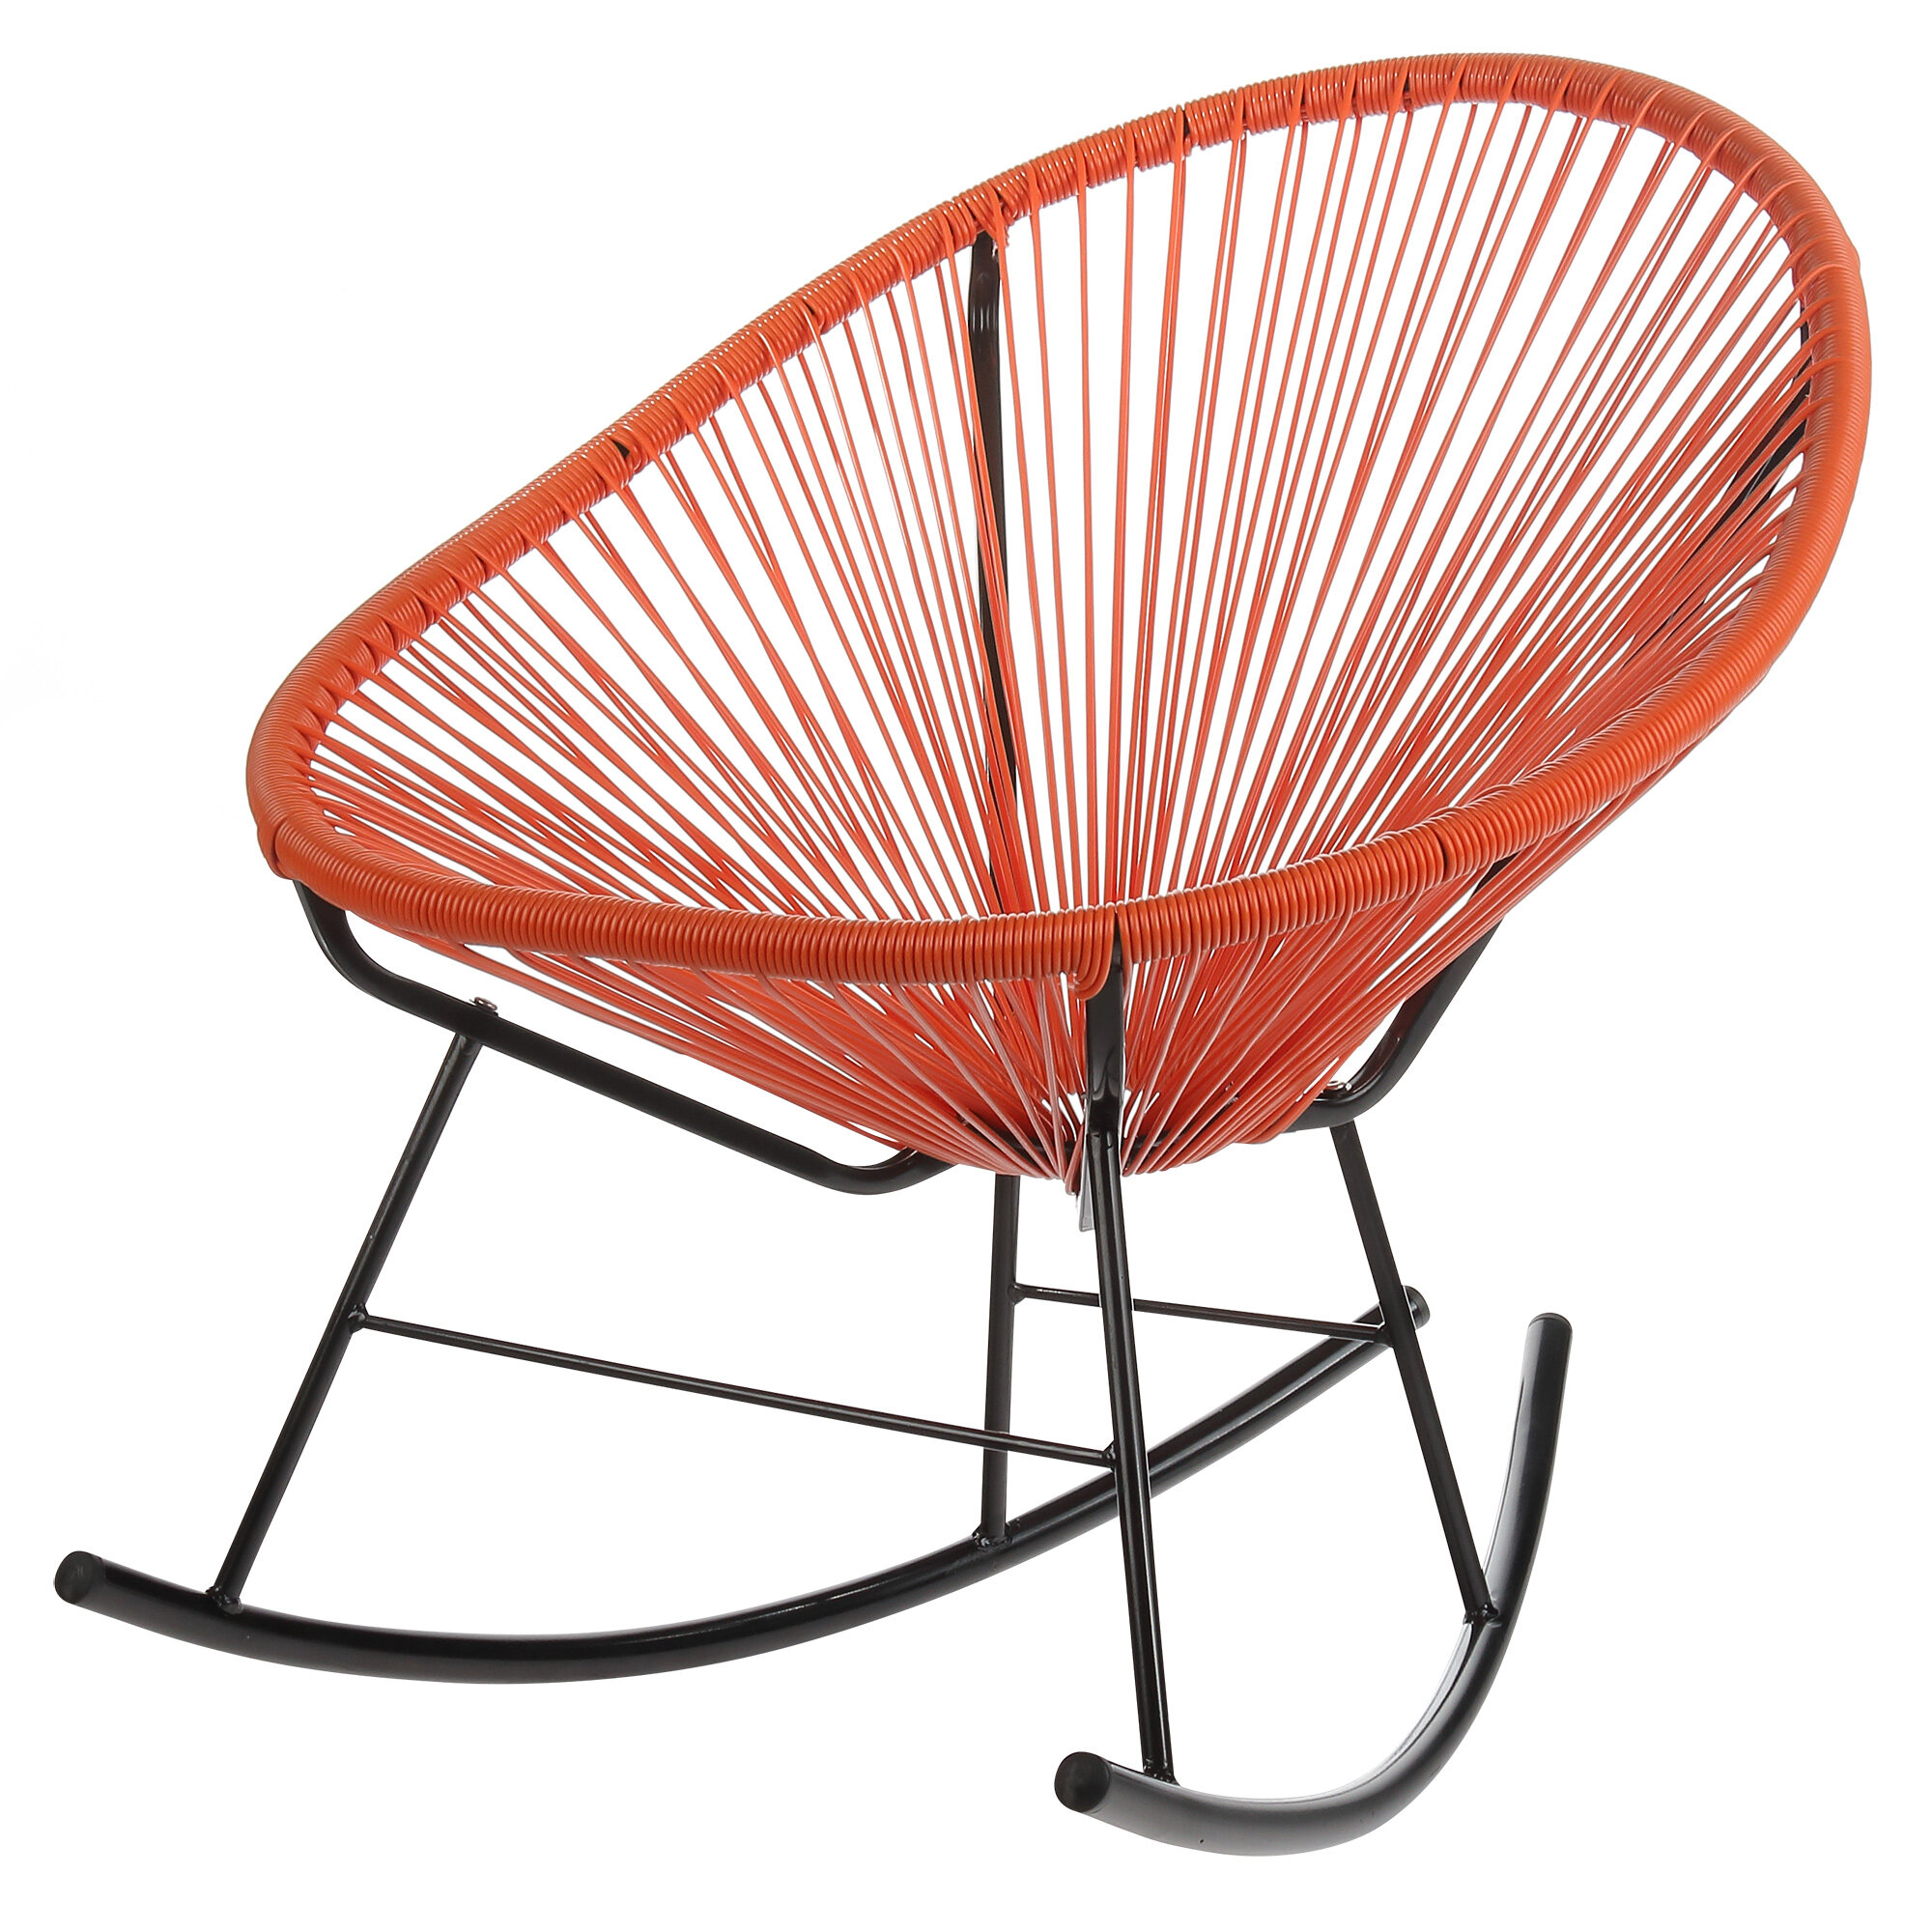 Modern Outdoor Rocking Chairs | Allmodern With Regard To Iron Grove Slatted Glider Benches (View 25 of 26)